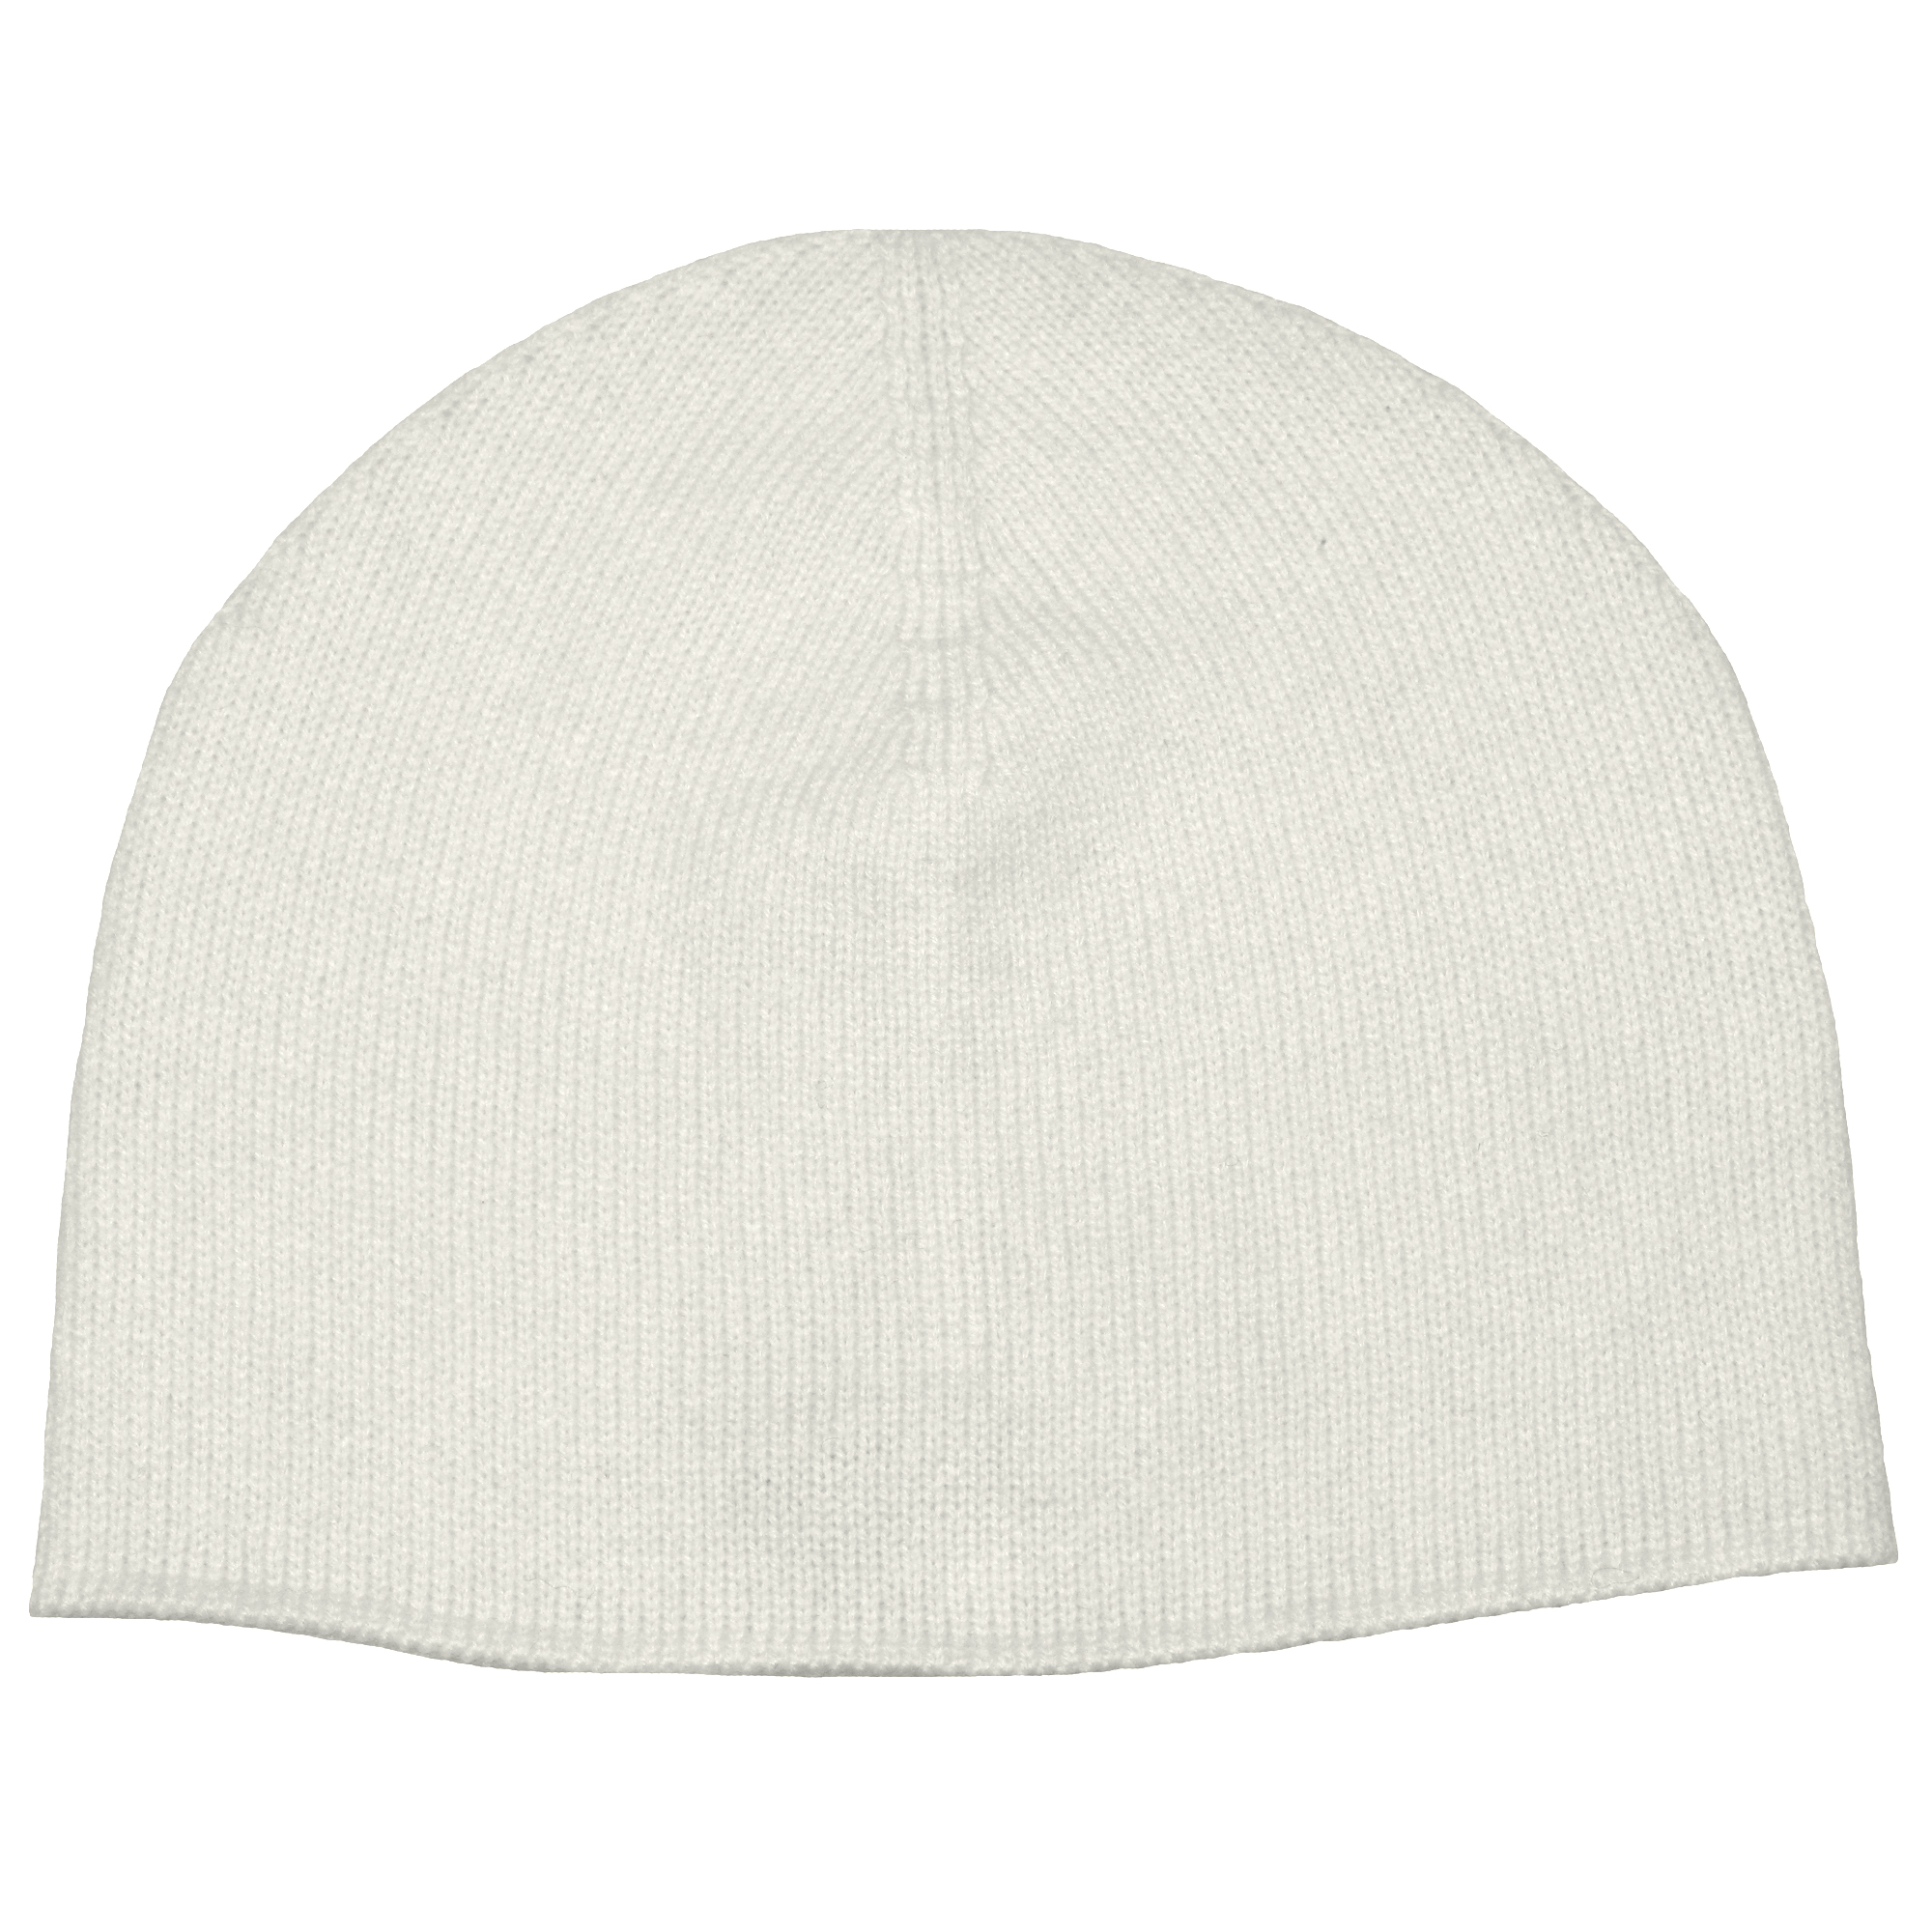 Looking for hats for men in a variety of styles and colors from all your favorite brands? Shop for men's hats at PacSun and enjoy free shipping on all orders over $50! Hats & Beanies. Dad & Baseball Hats Snapback Hats Trucker Hats Brimmed & Bucket Hats adidas Washed White Strapback Dad Hat $ adidas Washed Black Strapback Dad Hat.